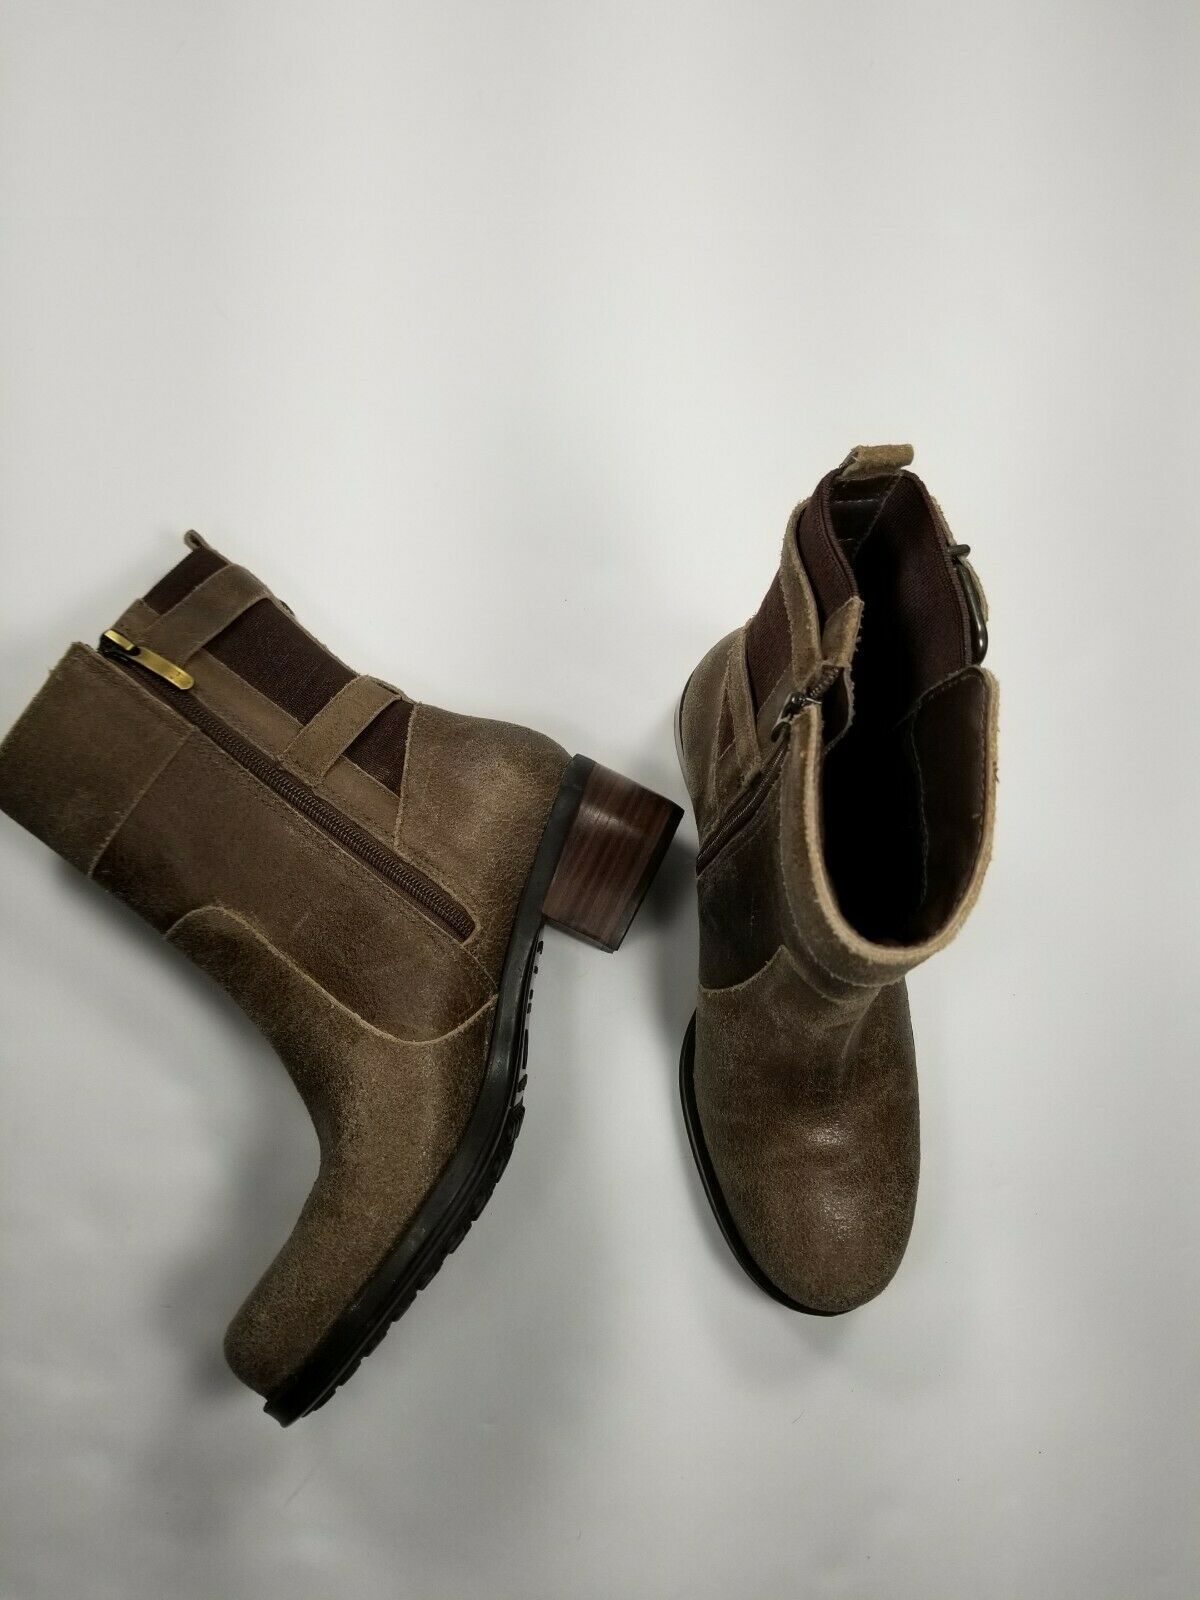 Andre Assous Laura Brown Distressed Leather Waterproof Booties EUR Size 38.5 New